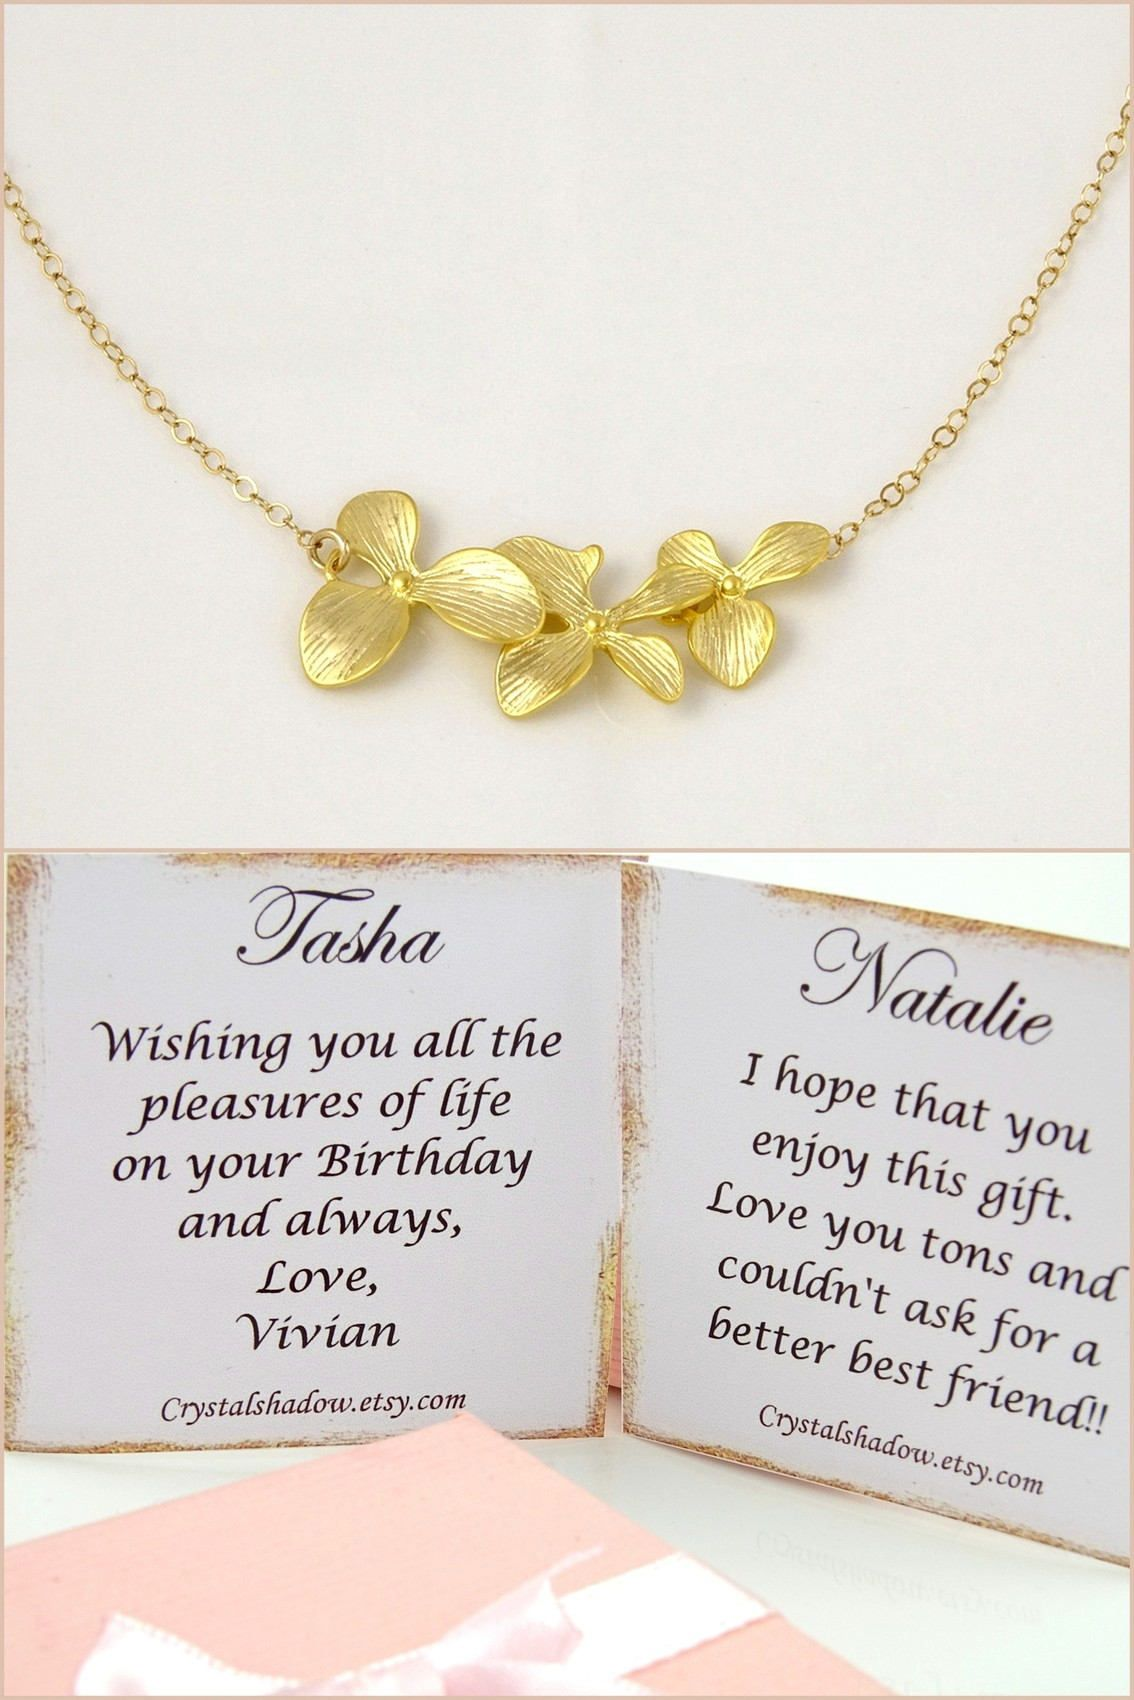 Gold Necklace For Wedding Jewelry For Bridesmaids Gifts For All Occasions Romantic Gifts F Romantic Gifts For Her Bridesmaid Gifts Anniversary Wishes For Wife